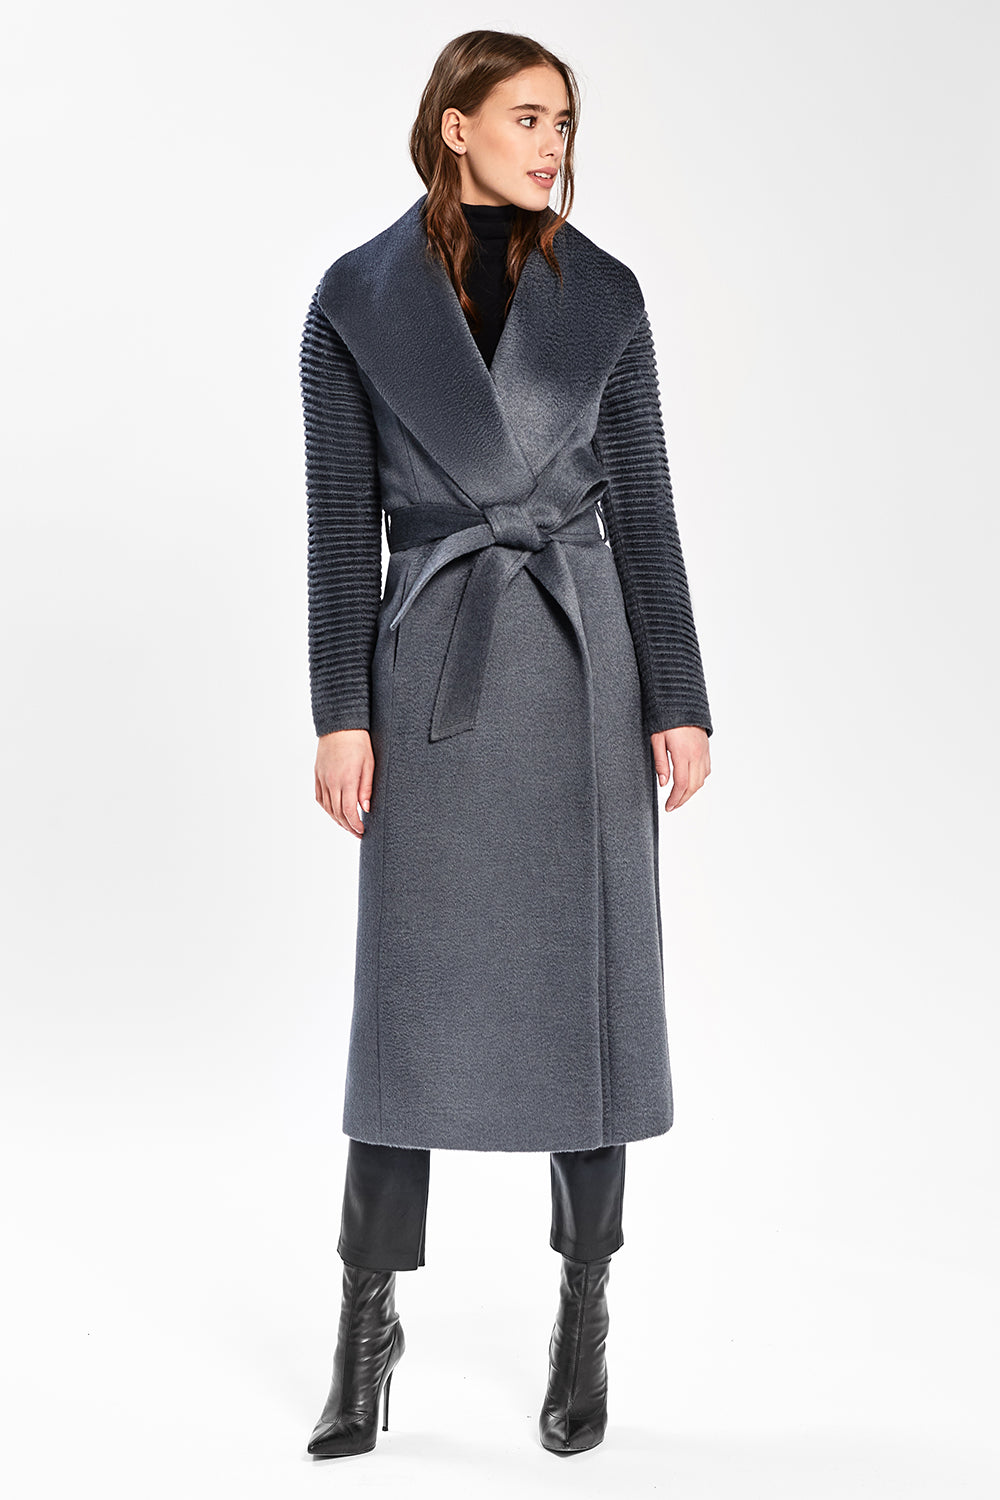 Sentaler Suri Alpaca Long Shawl Collar Wrap Coat with Ribbed Sleeves featured in Suri Alpaca and available in Charcoal. Seen from front.